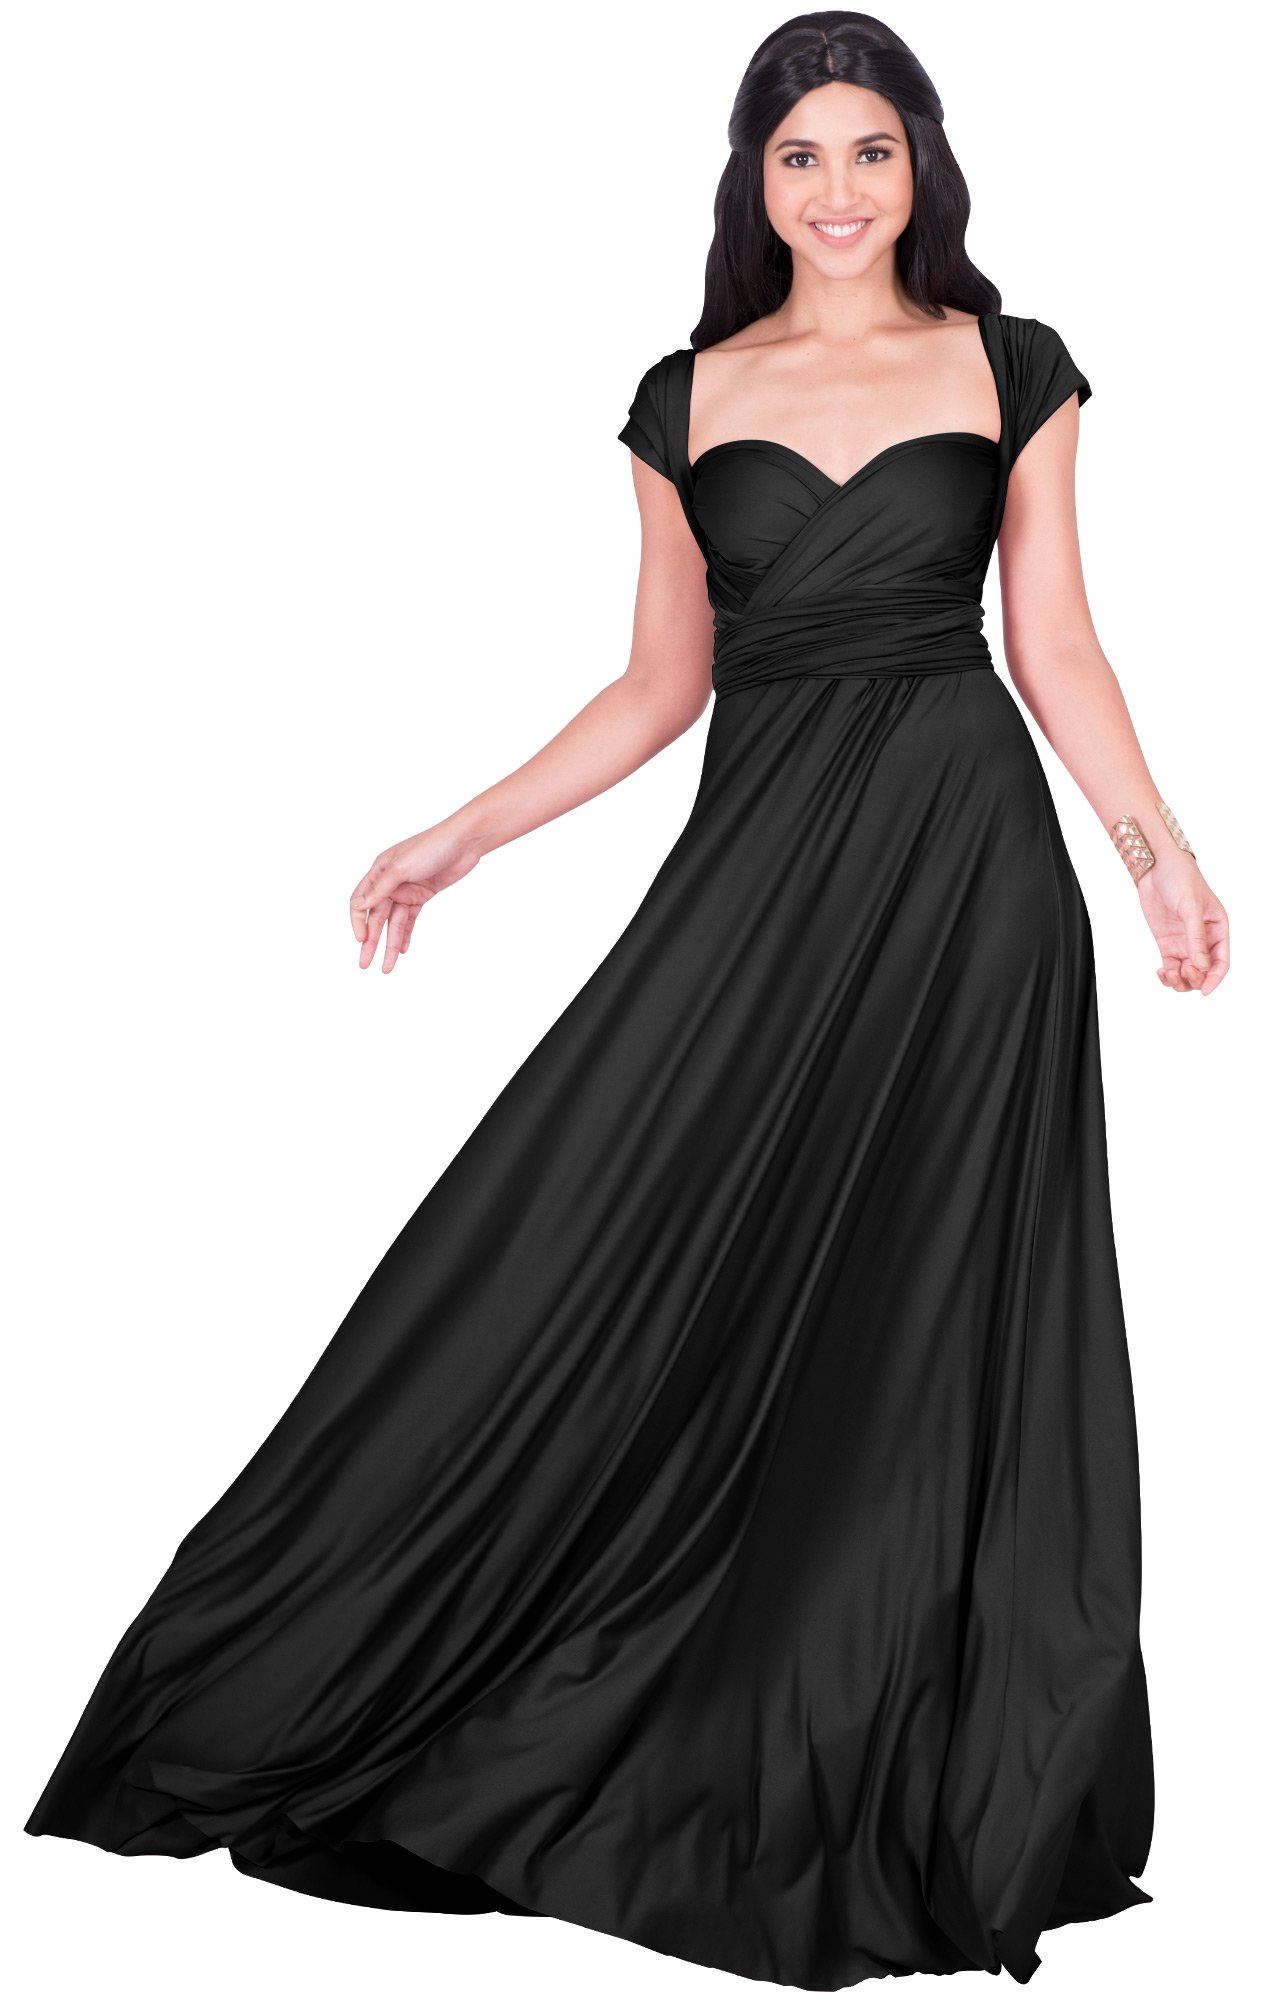 KOH KOH Plus Size Womens Long Bridesmaid Multi-way Wedding Convertible Wrap Infinity Cocktail Sexy Summer Party Formal Prom Transformer Gown Gowns Maxi Dress Dresses, Black 2XL 18-20